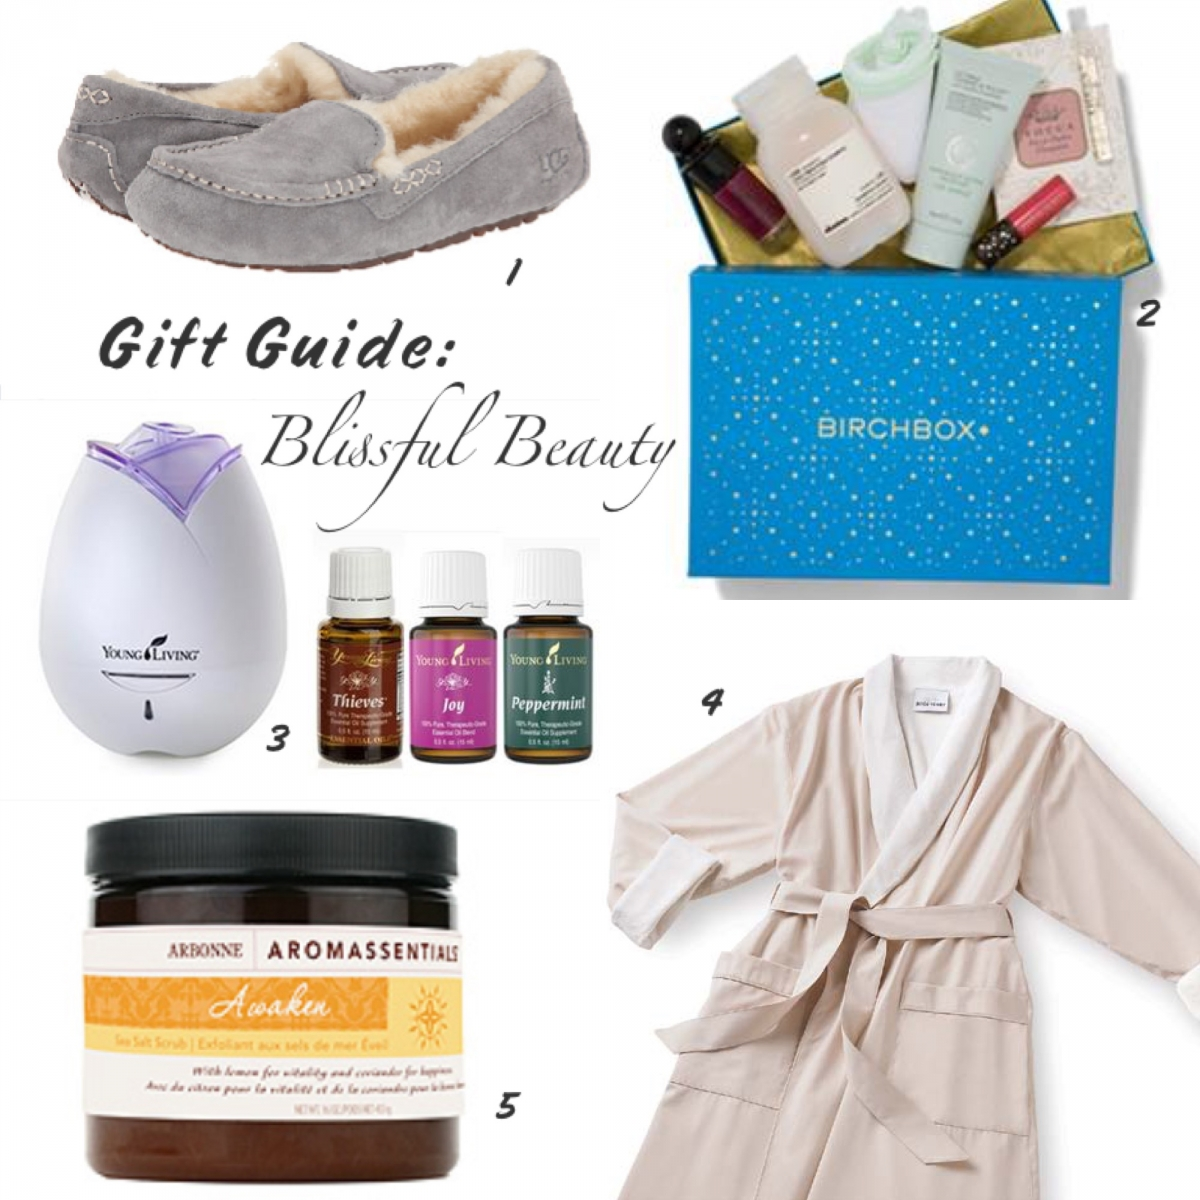 Gift Guide: Blissful Beauty